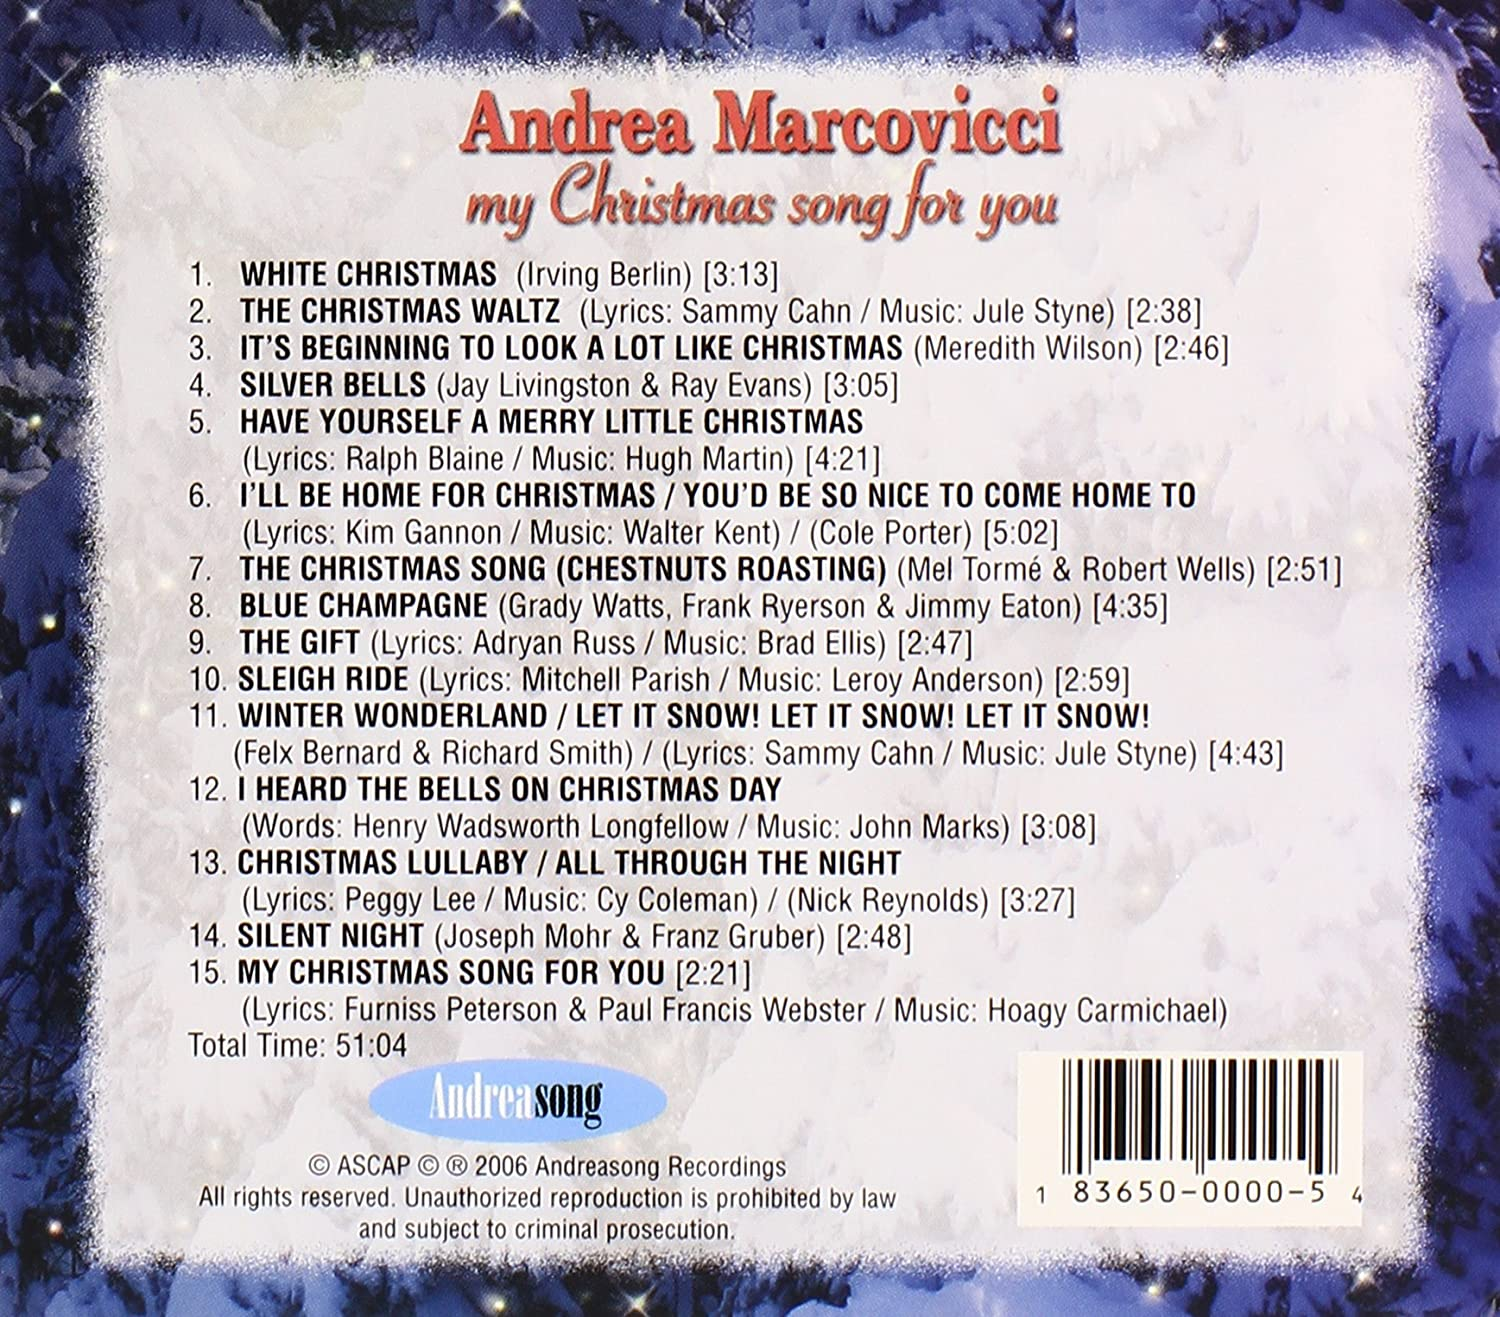 Andrea Marcovicci - My Christmas Song for You - Amazon.com Music